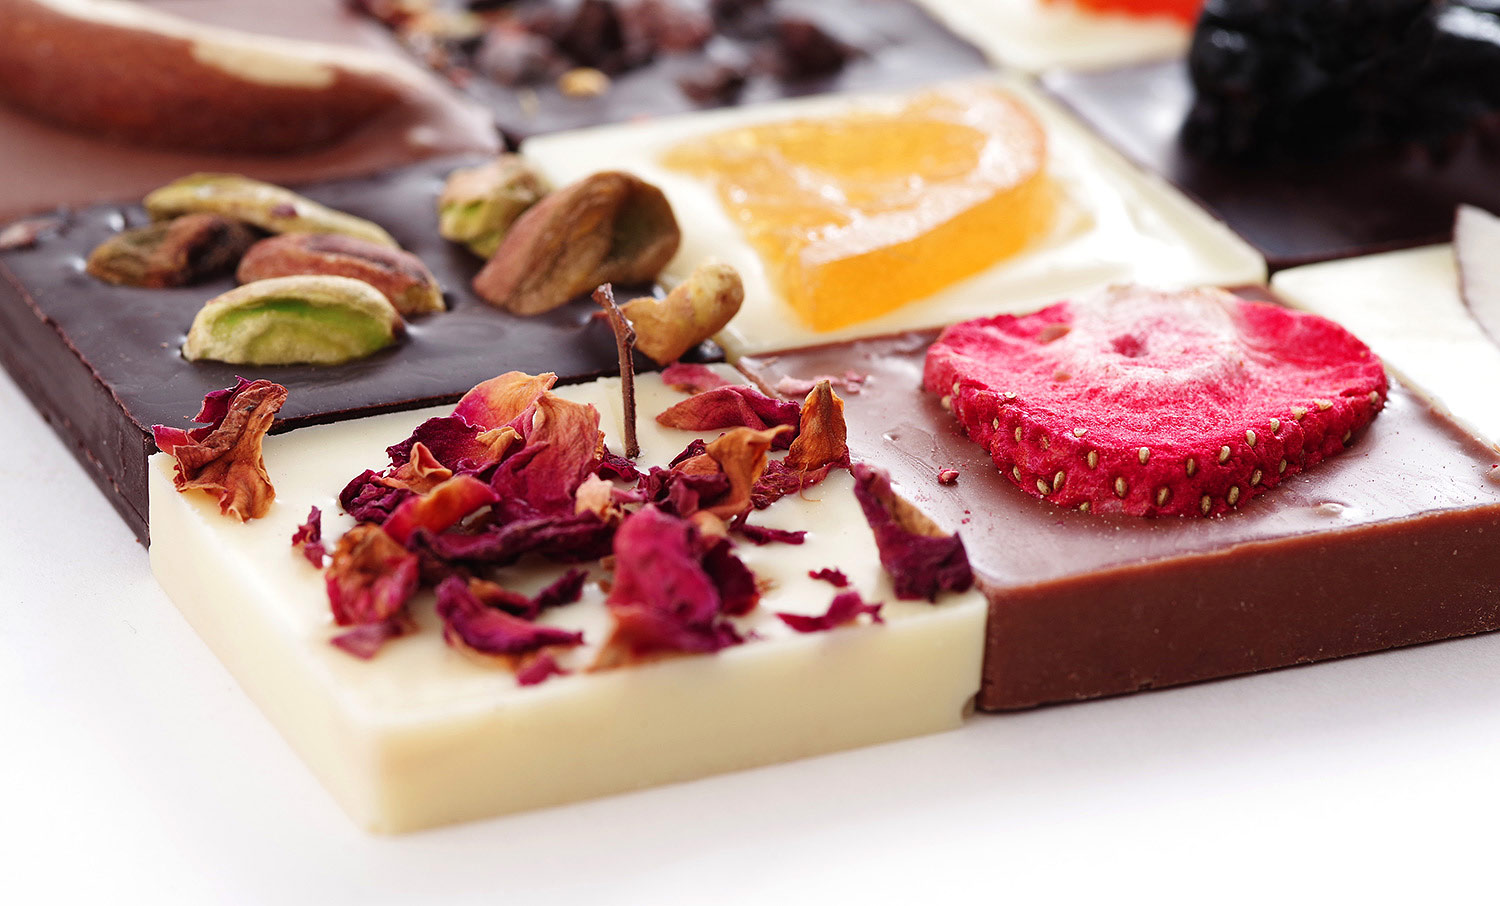 White chocolate with rose petals, milk chocolate with strawberries, white chocolate with orange, black chocolate with pistachios. Gift Altbank.